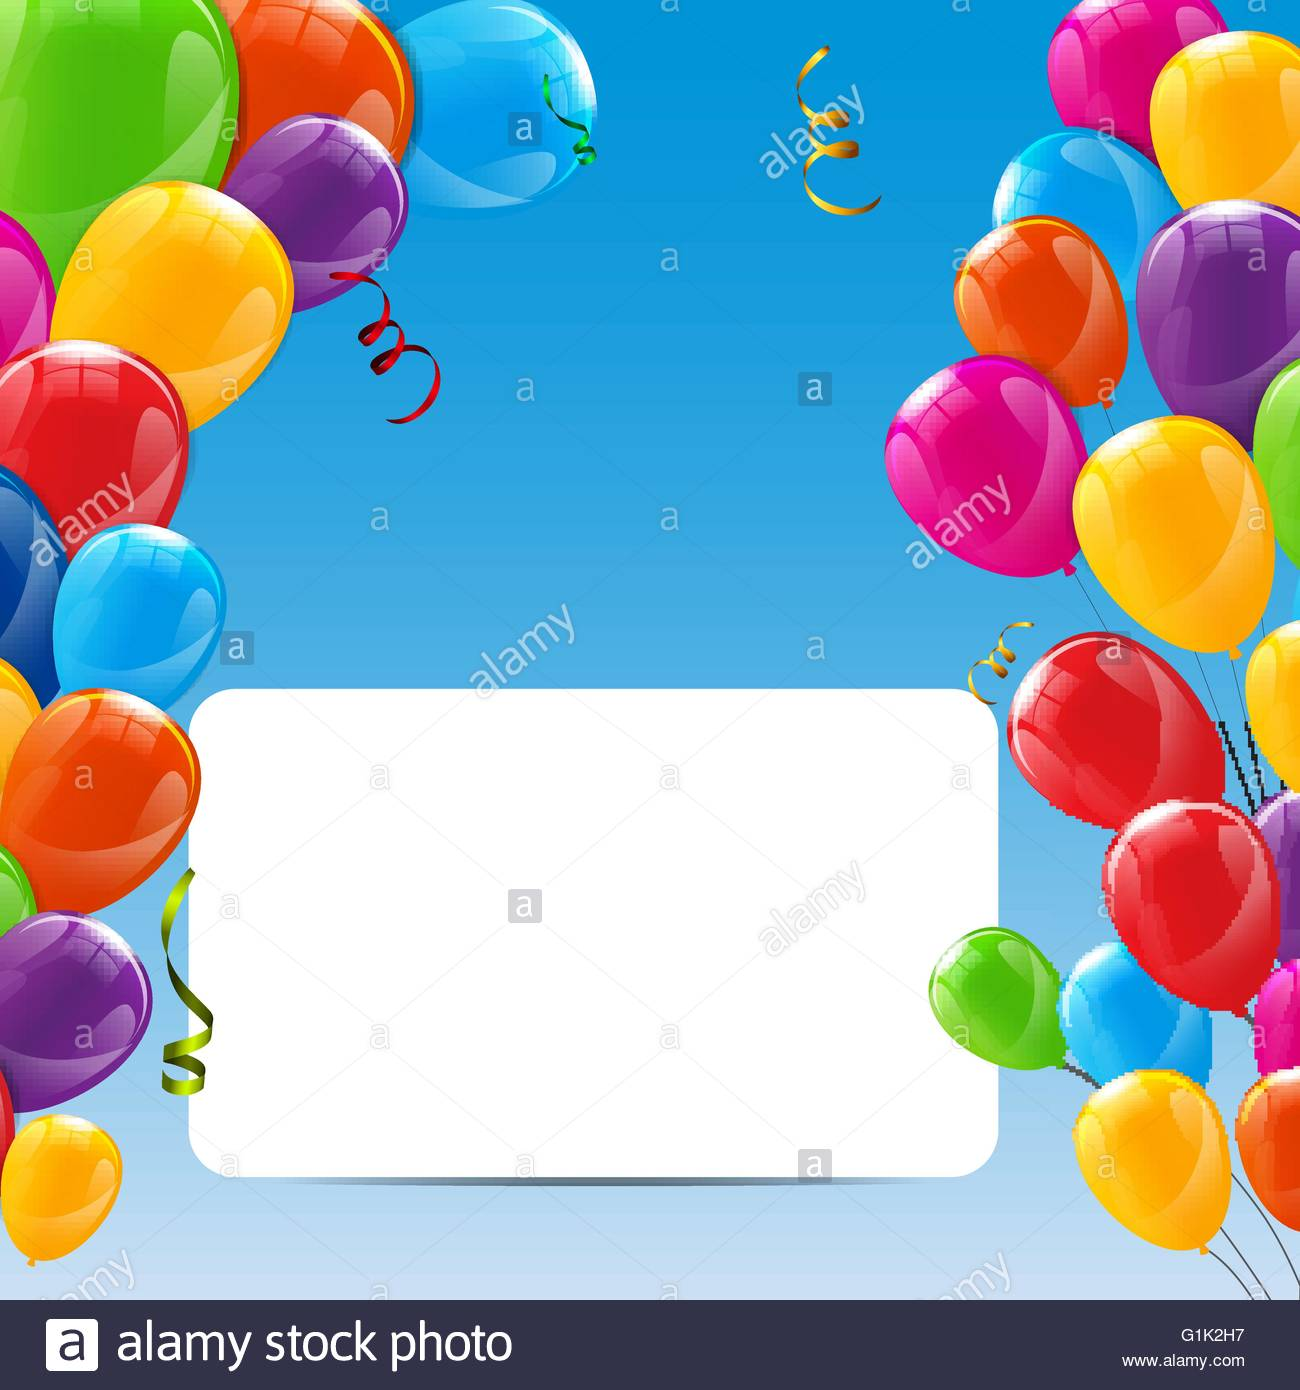 background images for birthday banner ; color-glossy-happy-birthday-balloons-banner-background-G1K2H7